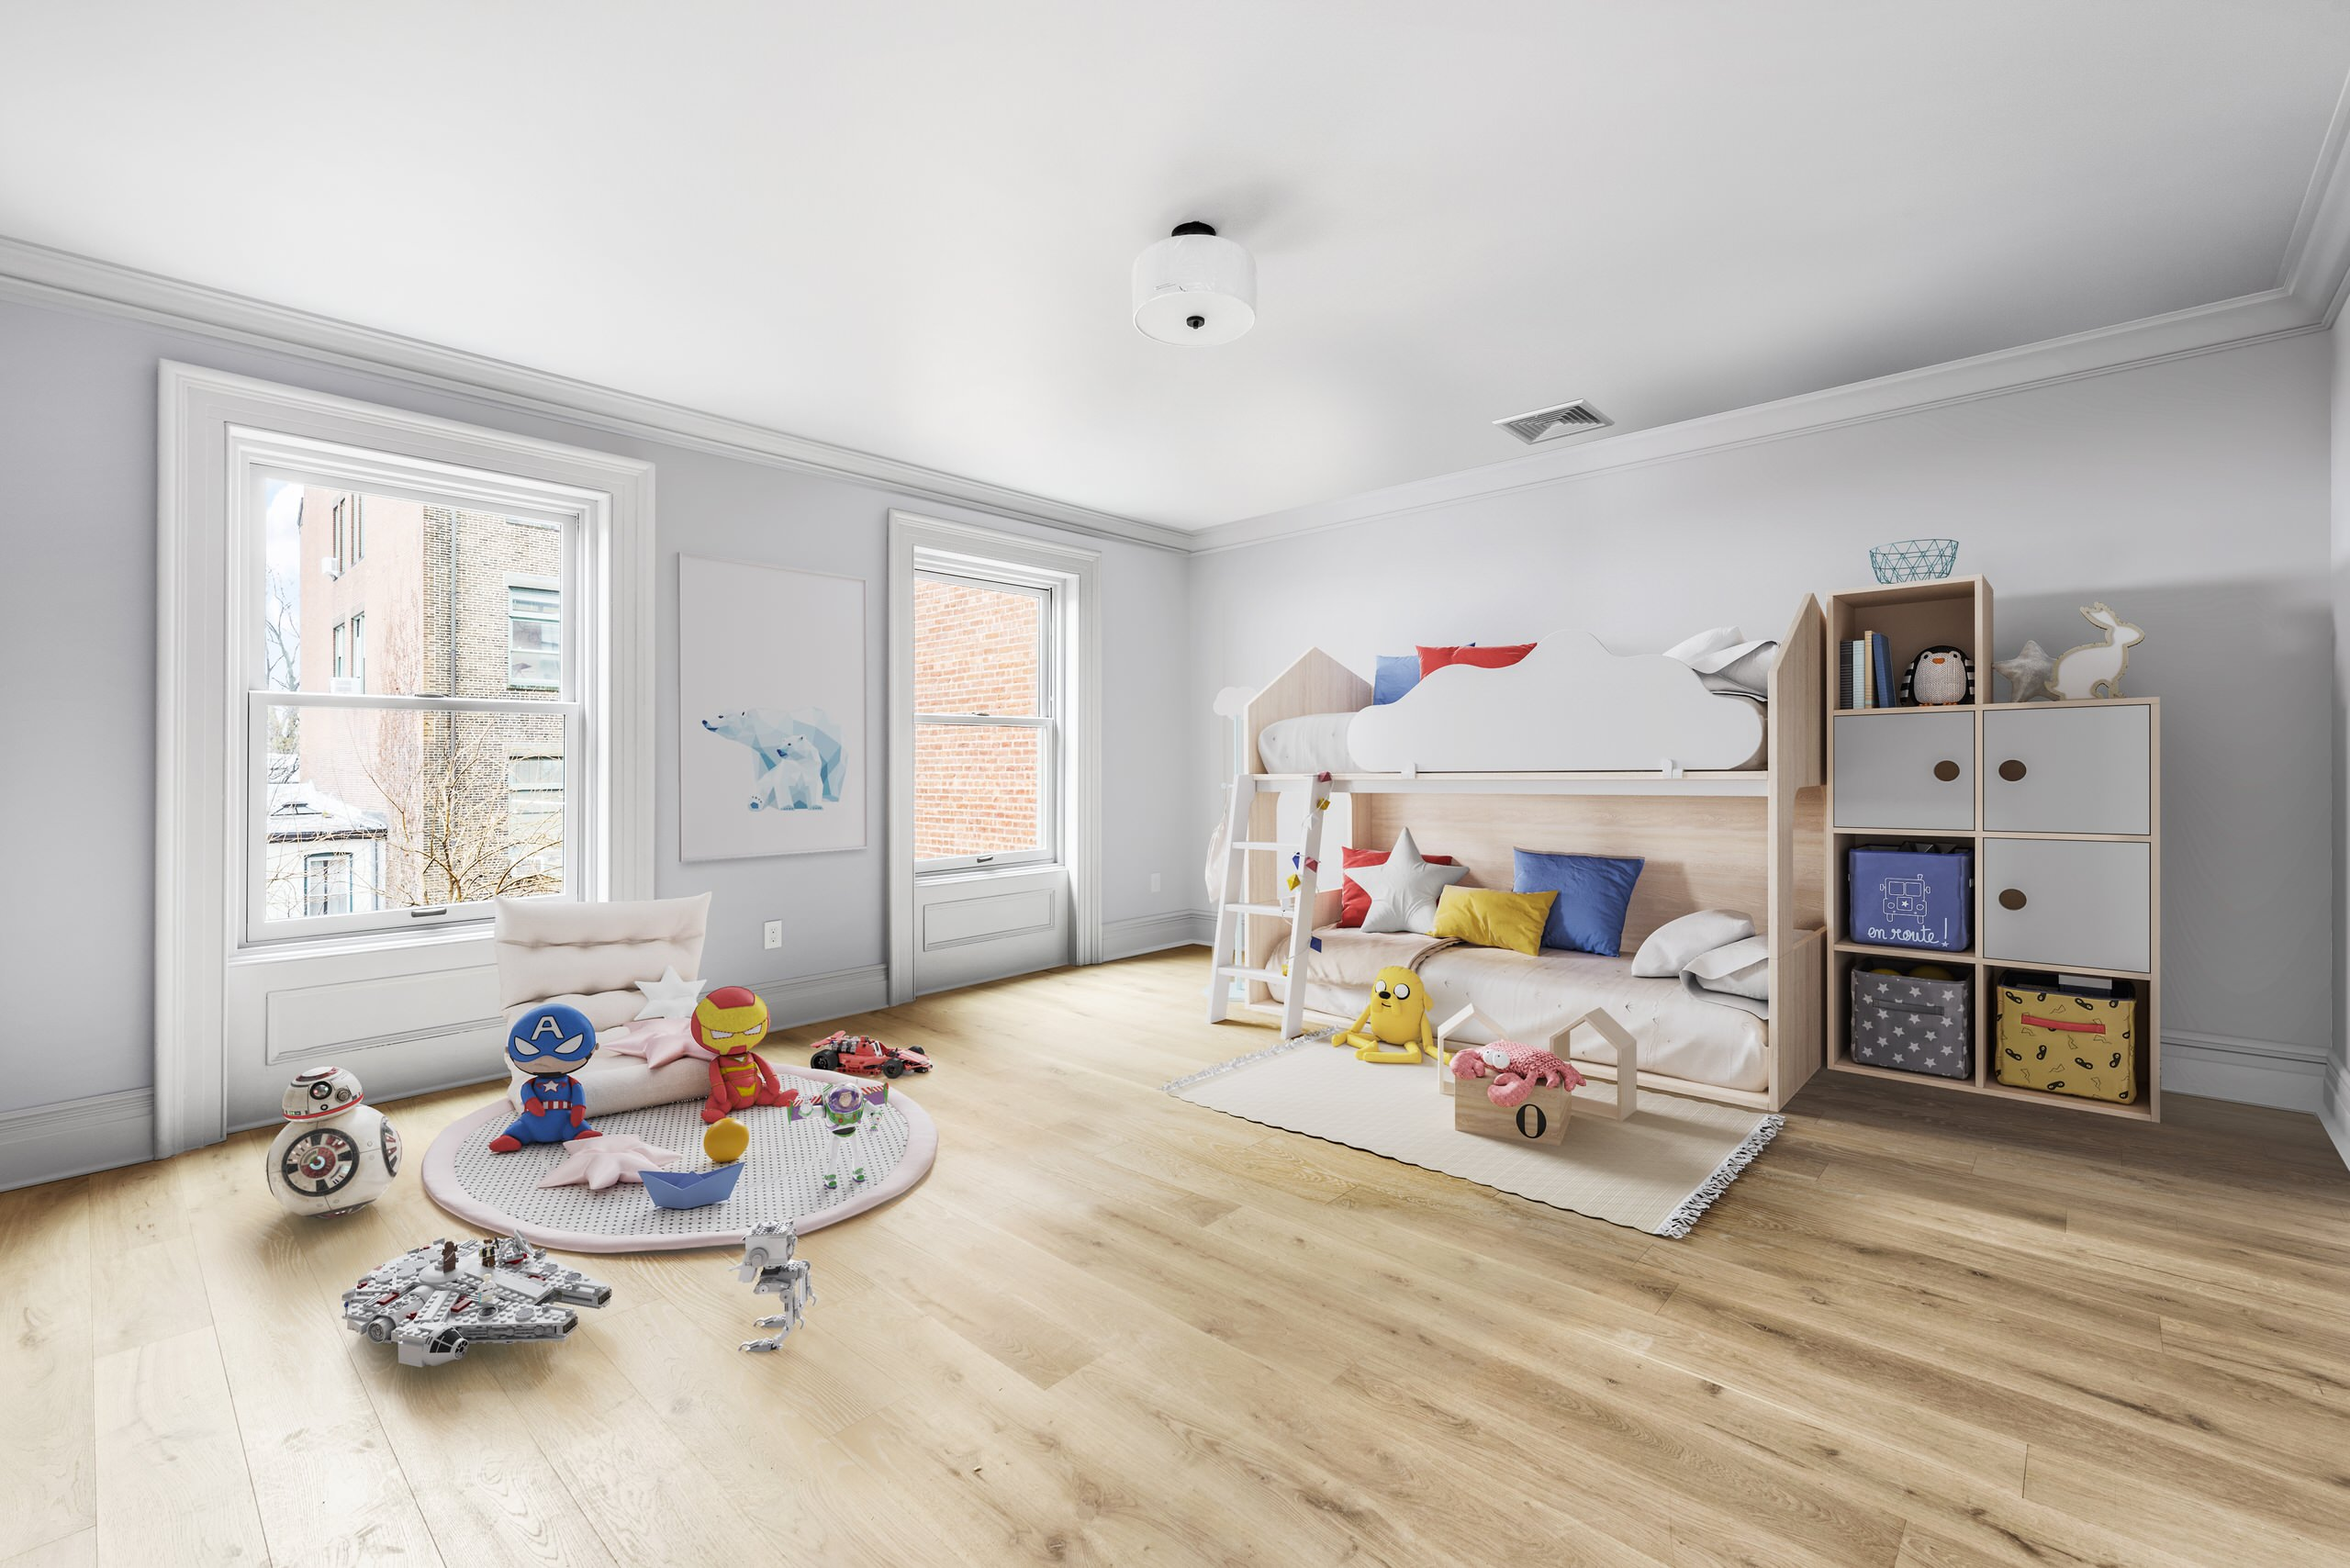 75 Beautiful Kids Room Pictures Ideas January 2021 Houzz